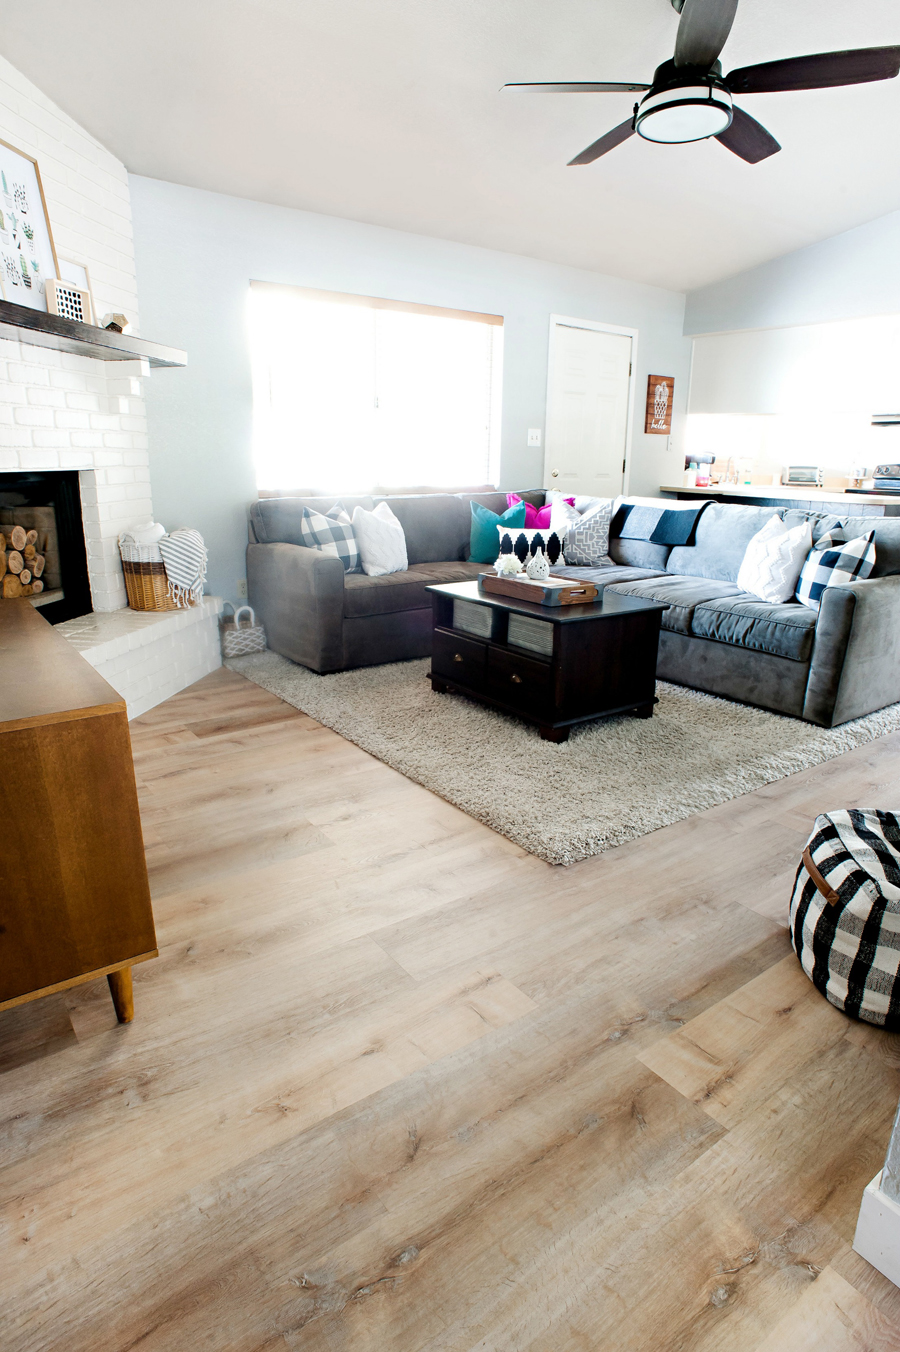 Wood Look Vinyl Plank Flooring from Allure